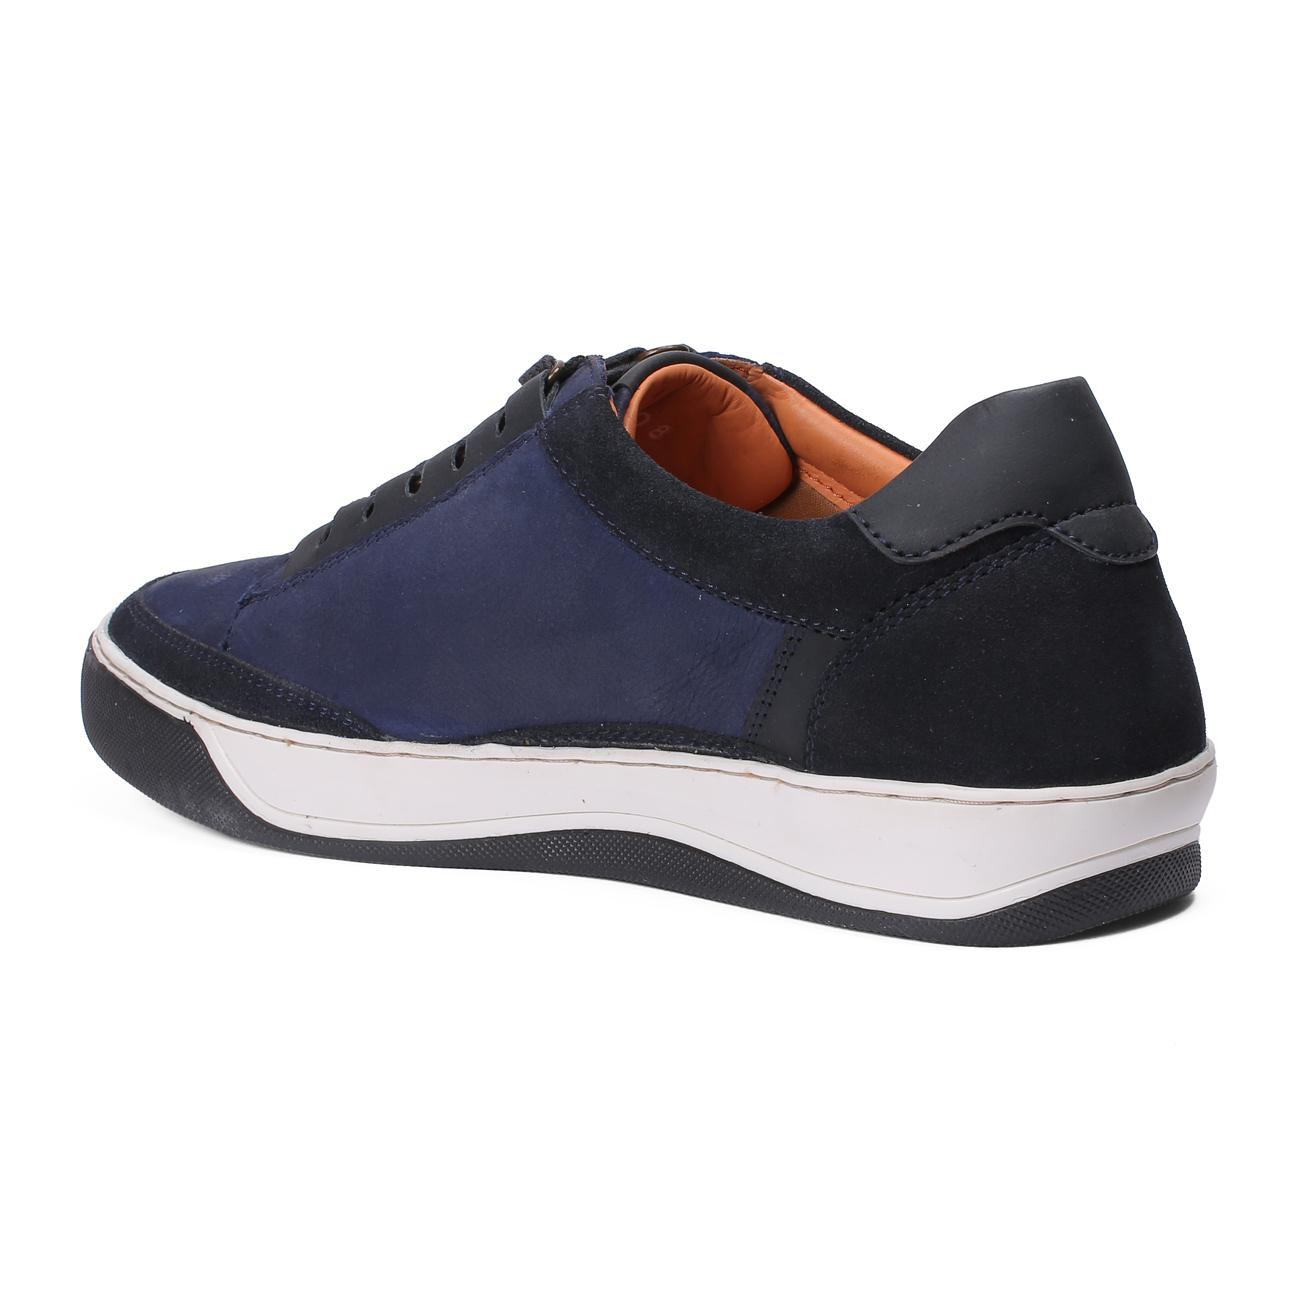 blue casual leather shoes side view_2